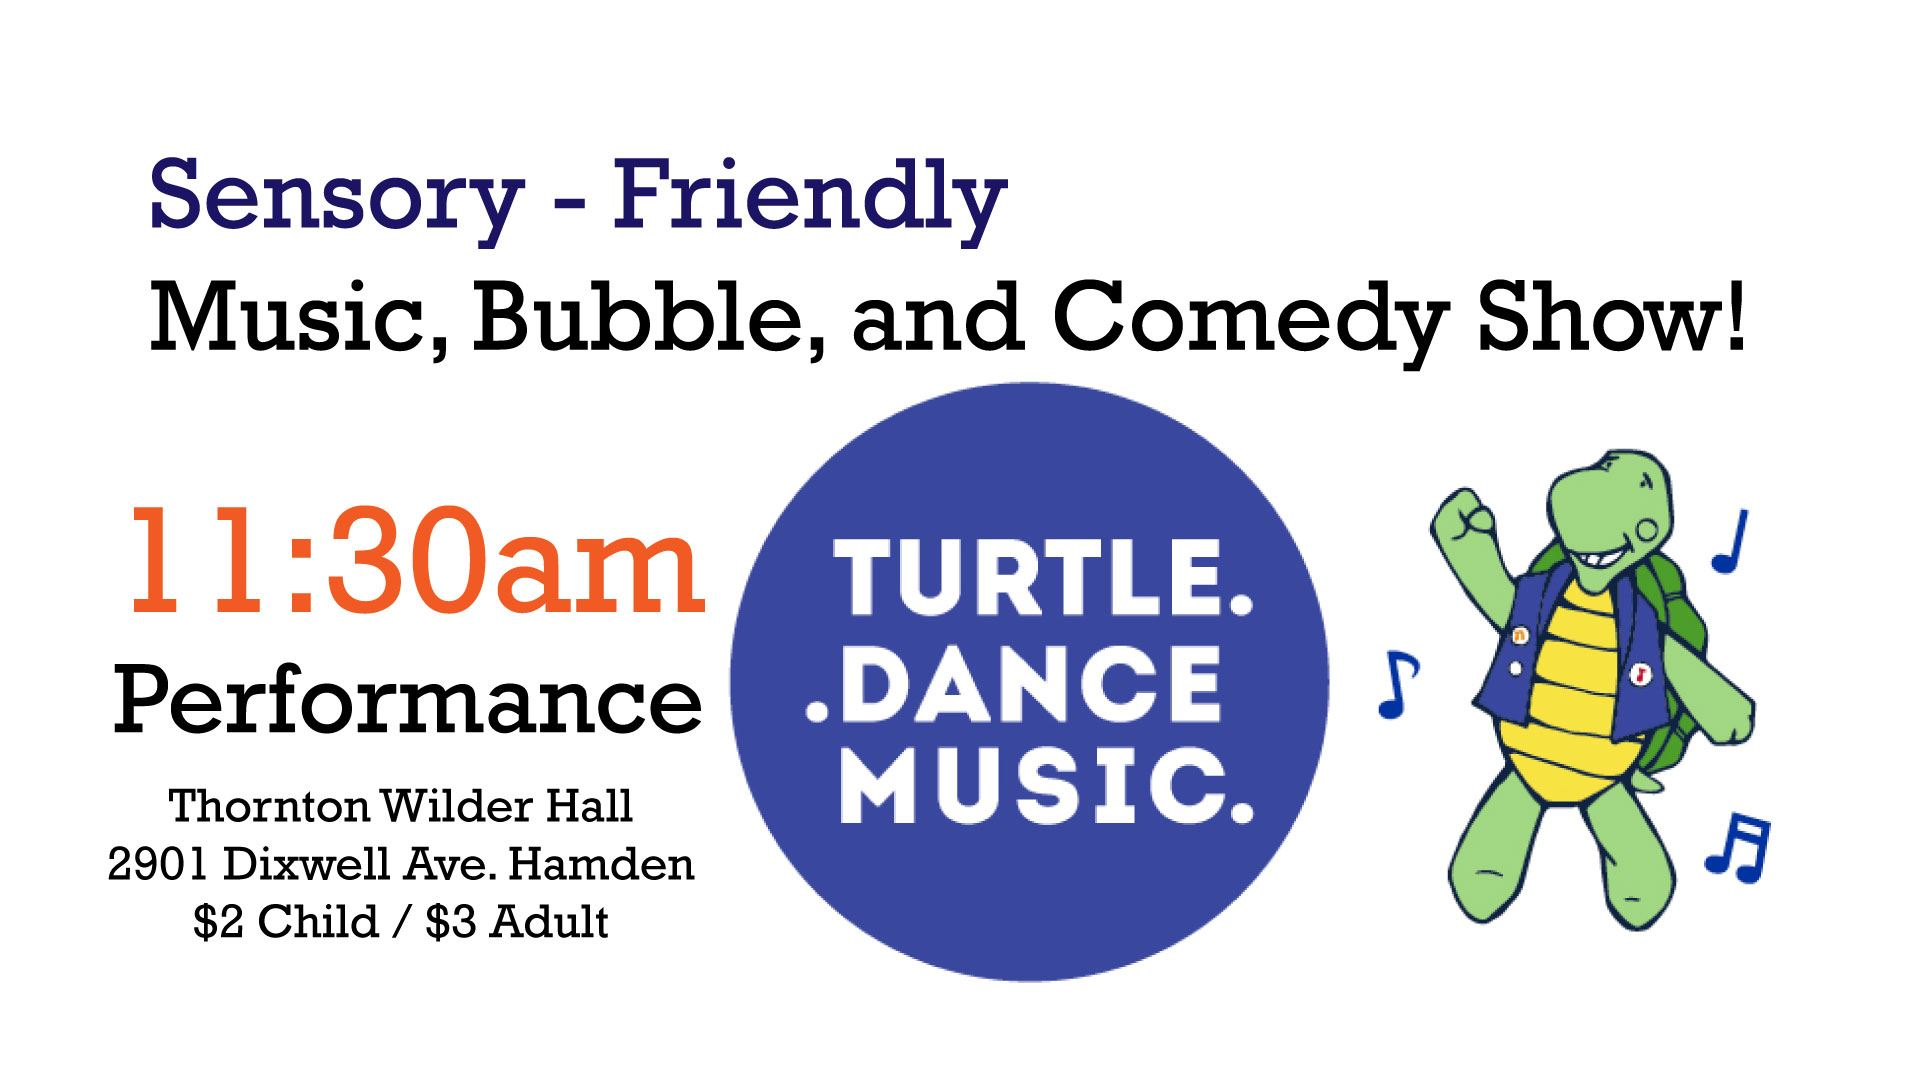 Turtle Dance Music Performance at 11:30am